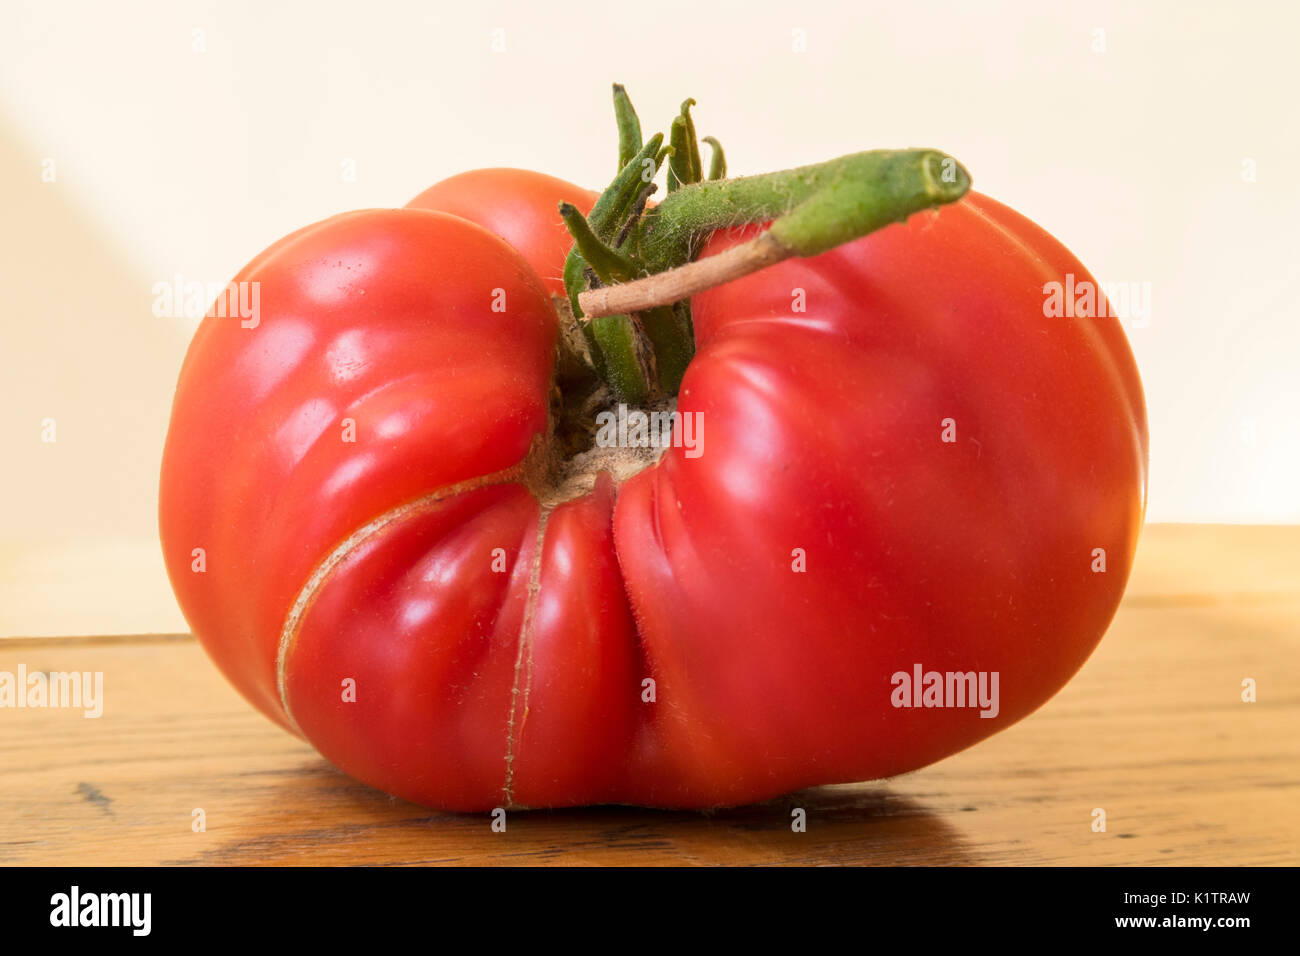 a large beef tomato heritage brandy wine growing into an awkward